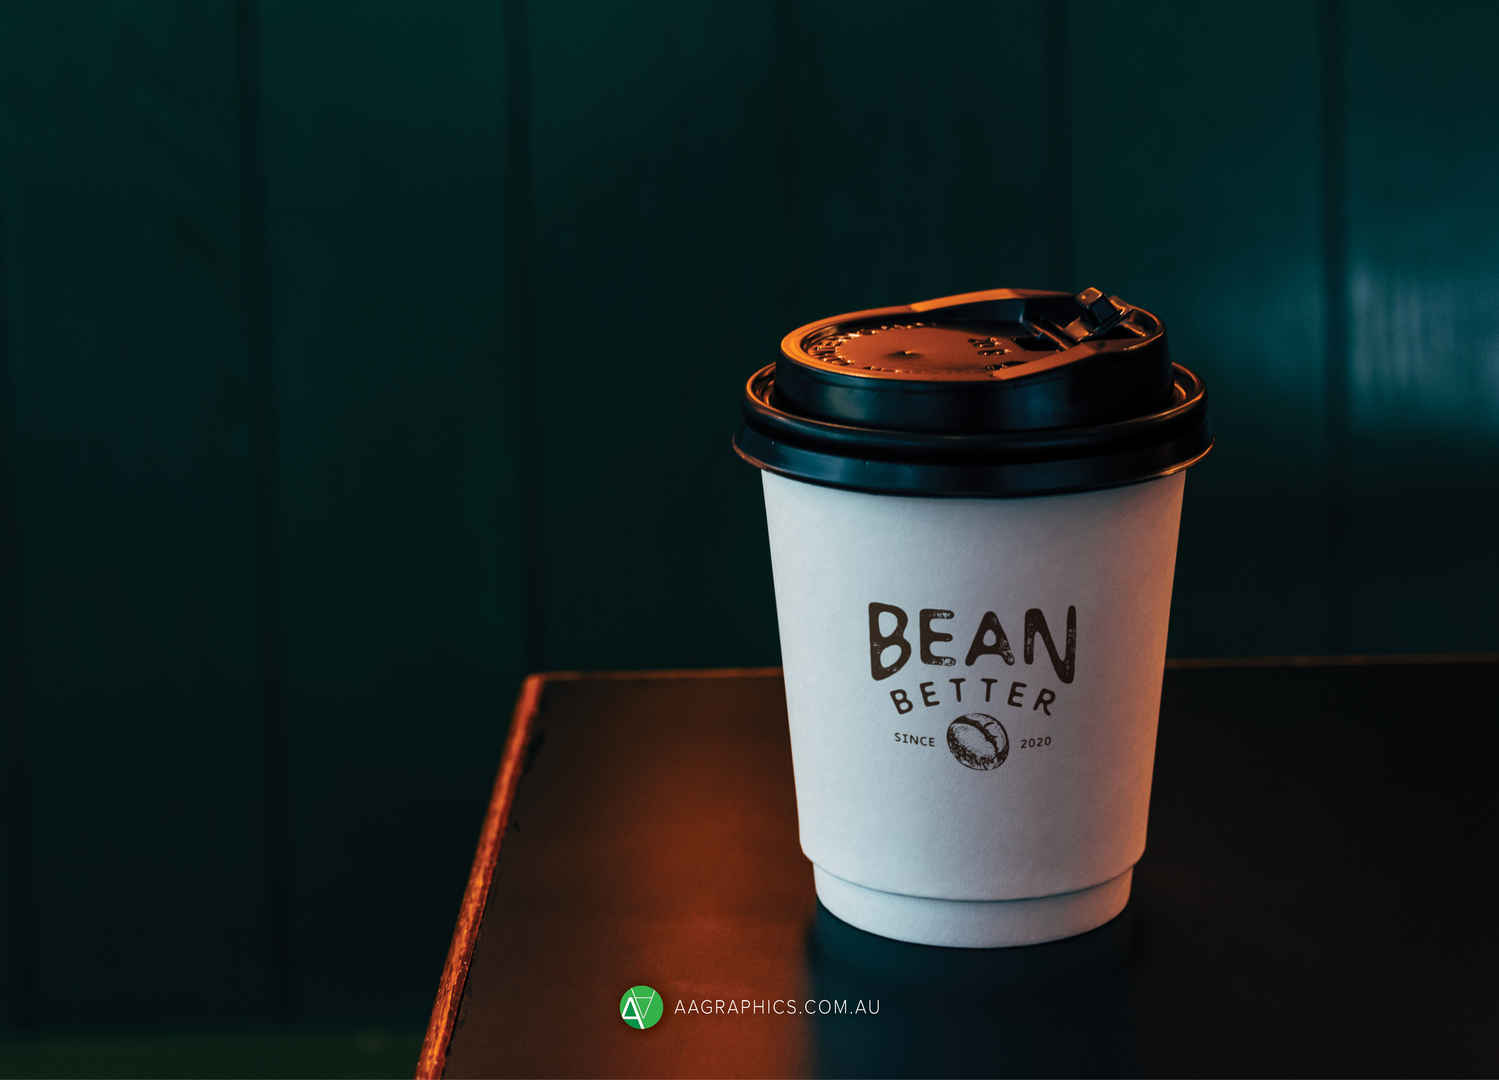 Bean Better_Logo_AA Graphics.jpg